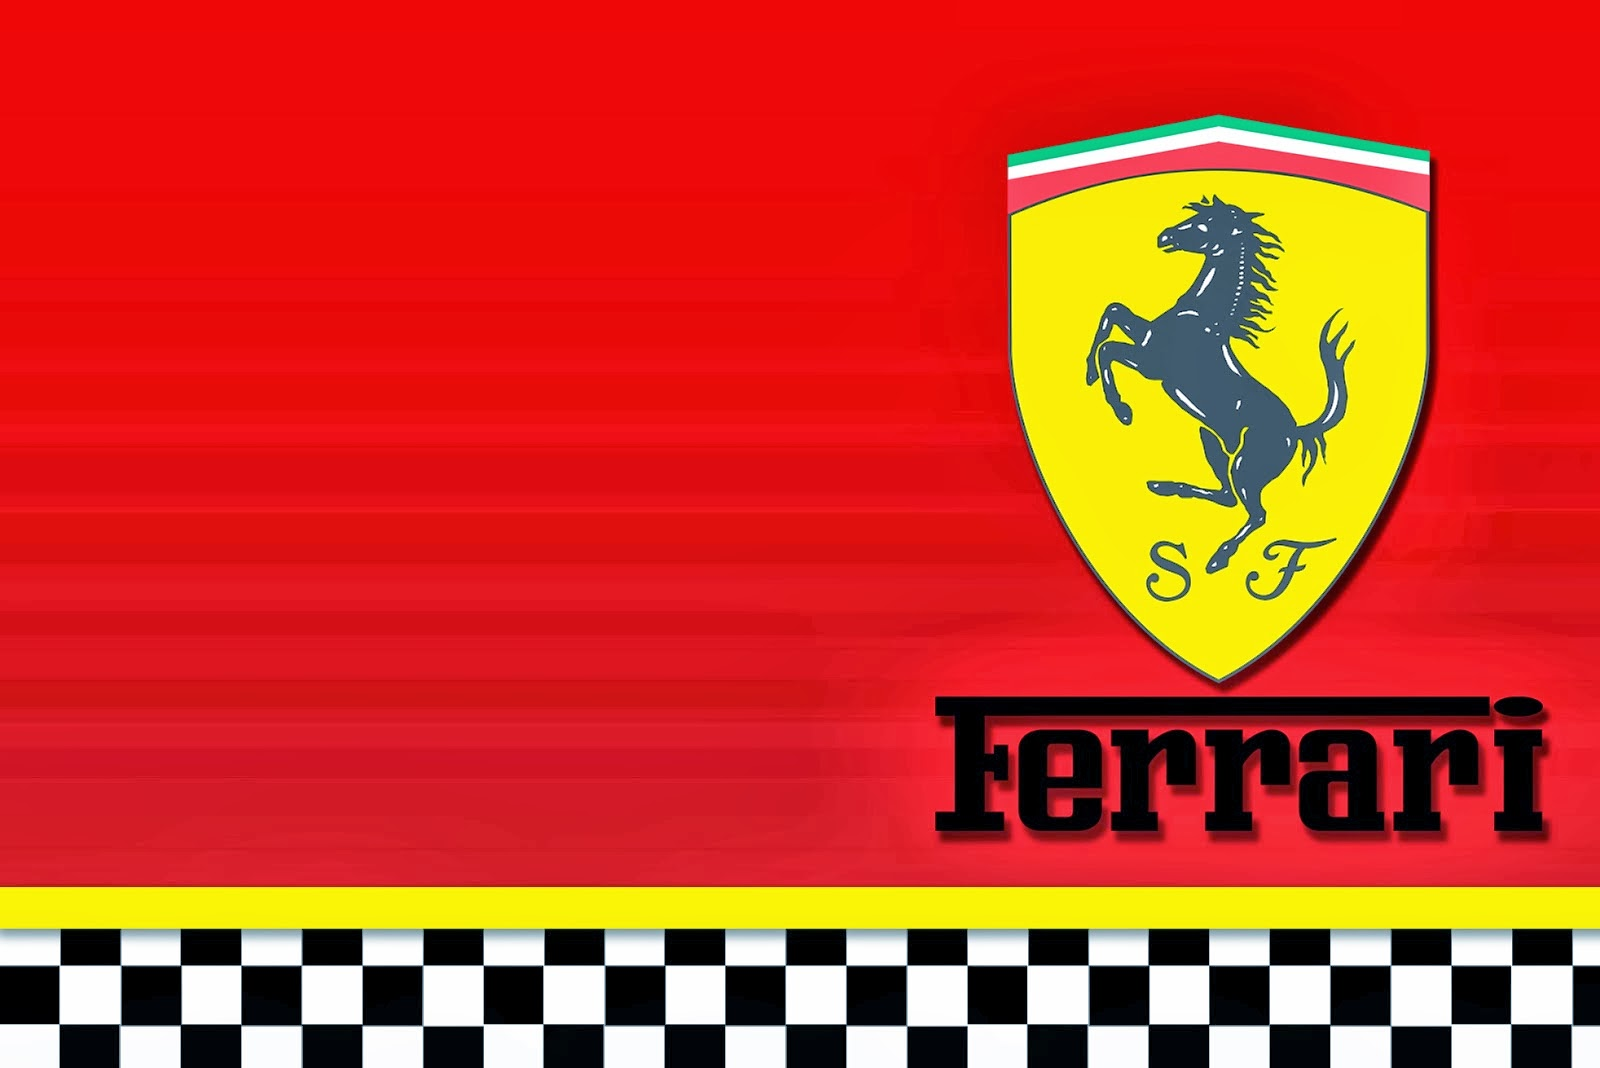 Ferrari: Free Printable Cards or Invitations. | Oh My Fiesta! in english